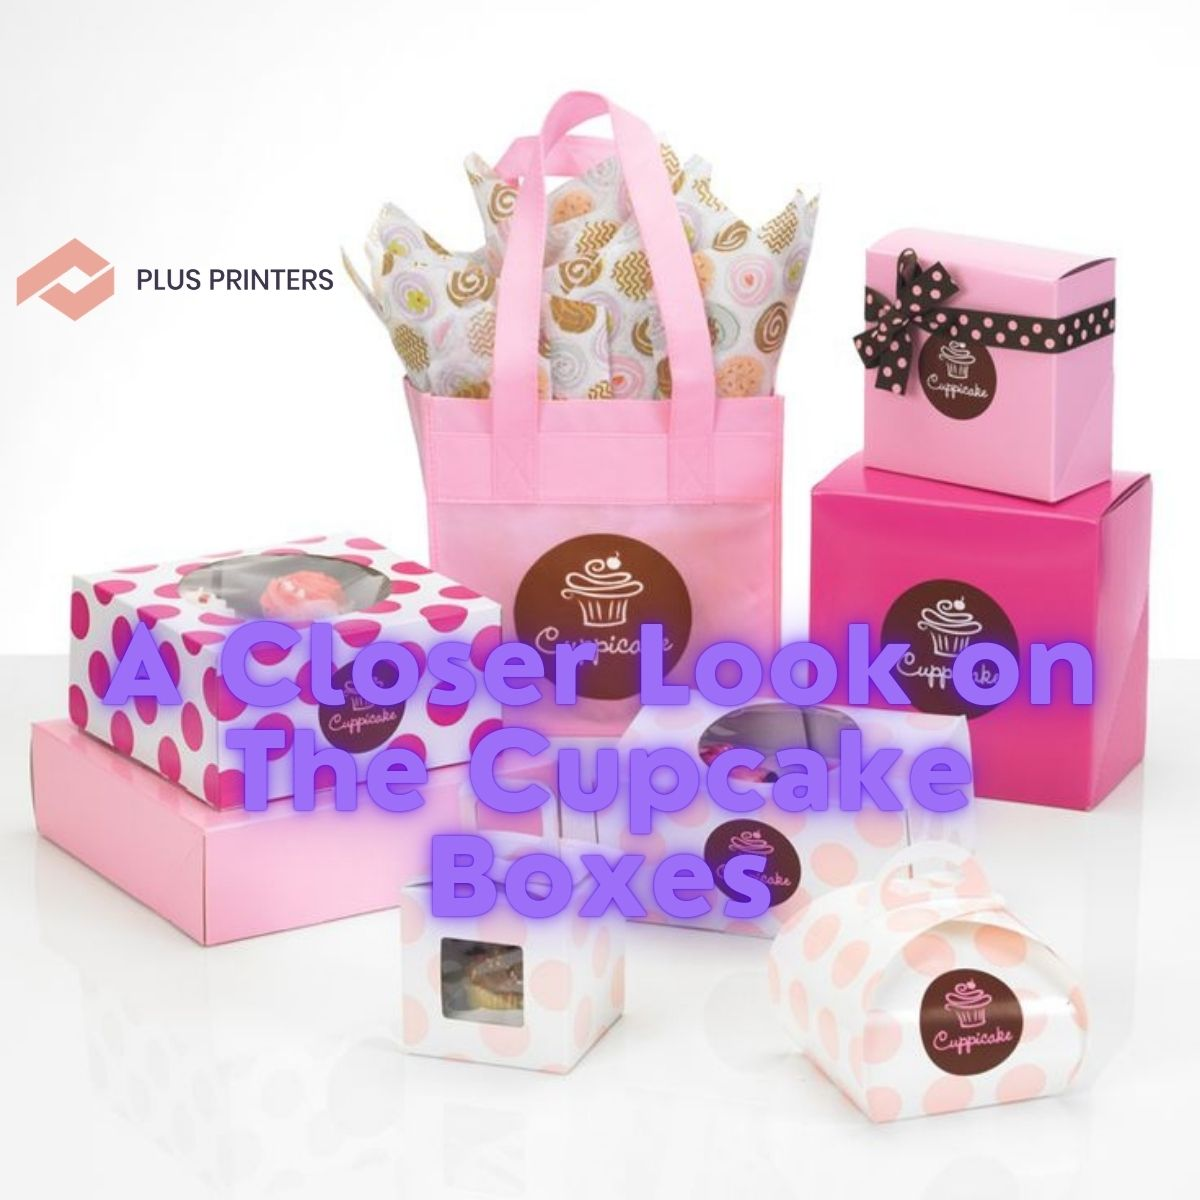 A Closer Look on The Cupcake Boxes